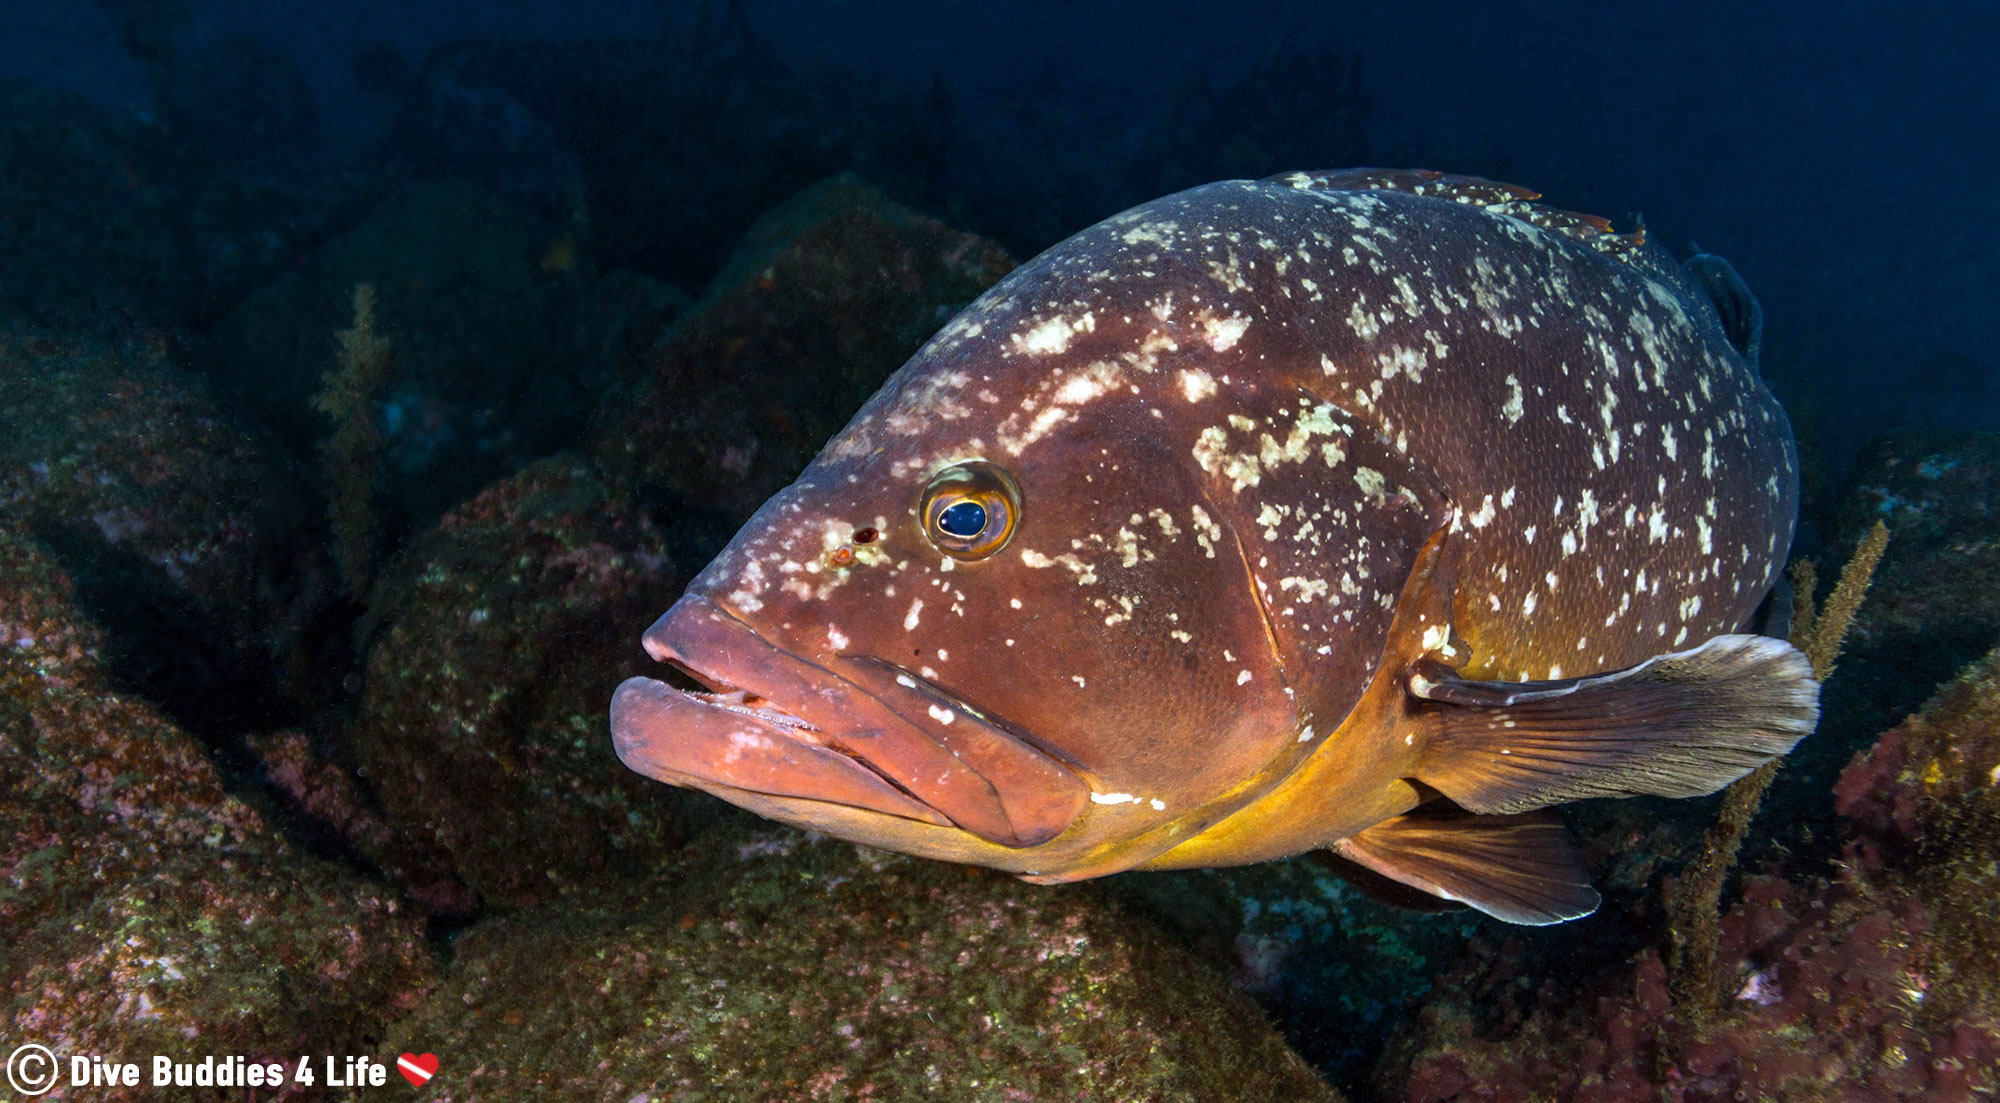 A Big Dusky Grouper Coming Close To The Underwater Camera On A Deep Dive On Saõ Miguel In The Portuguese Azores Islands